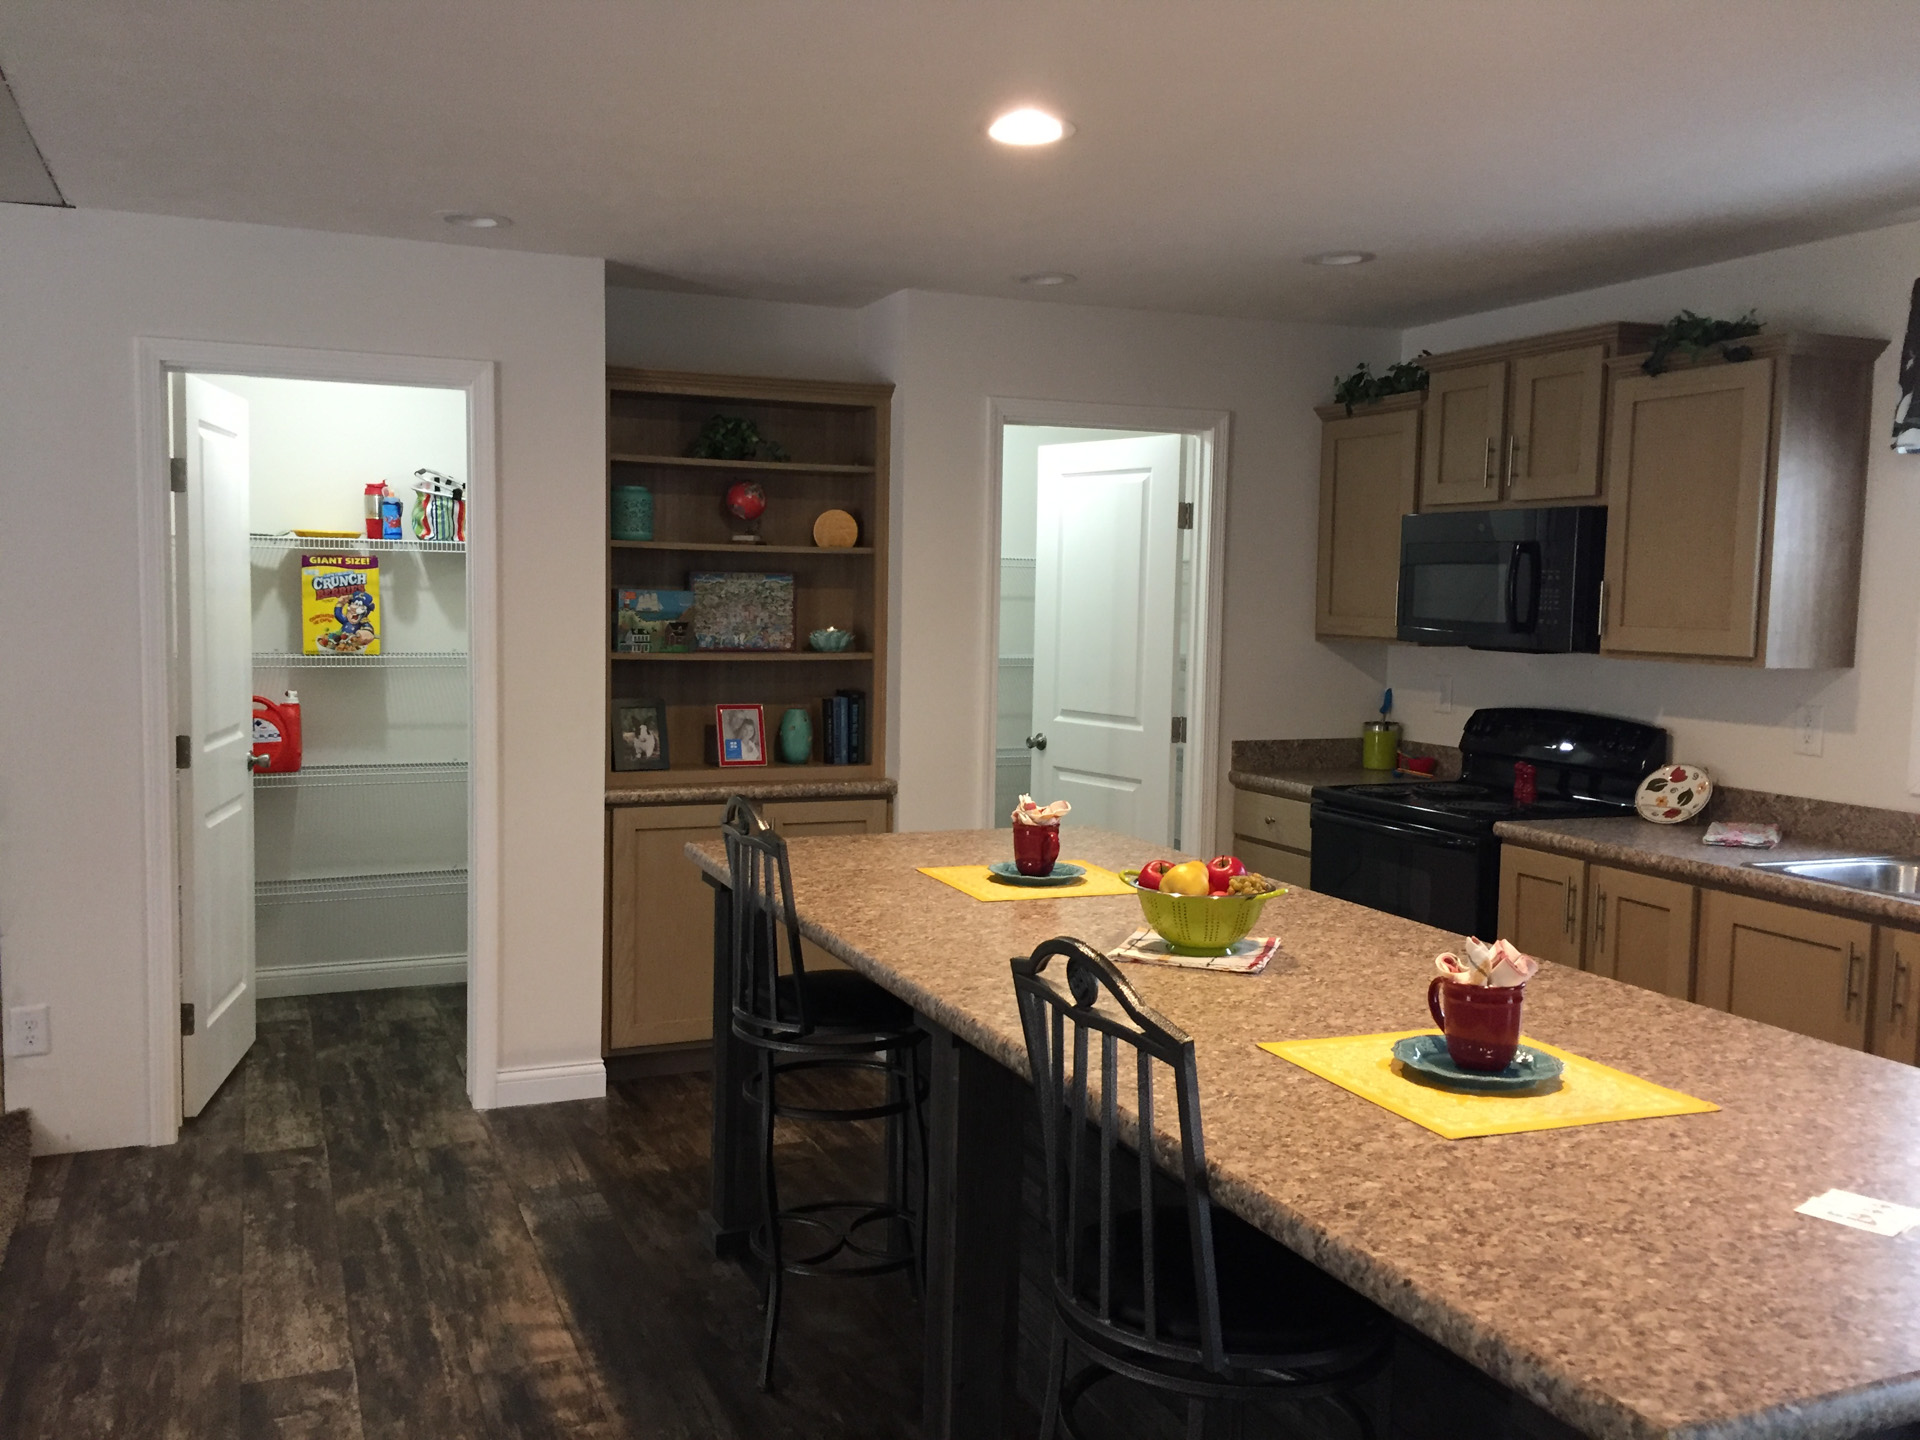 Limited kitchen pantry